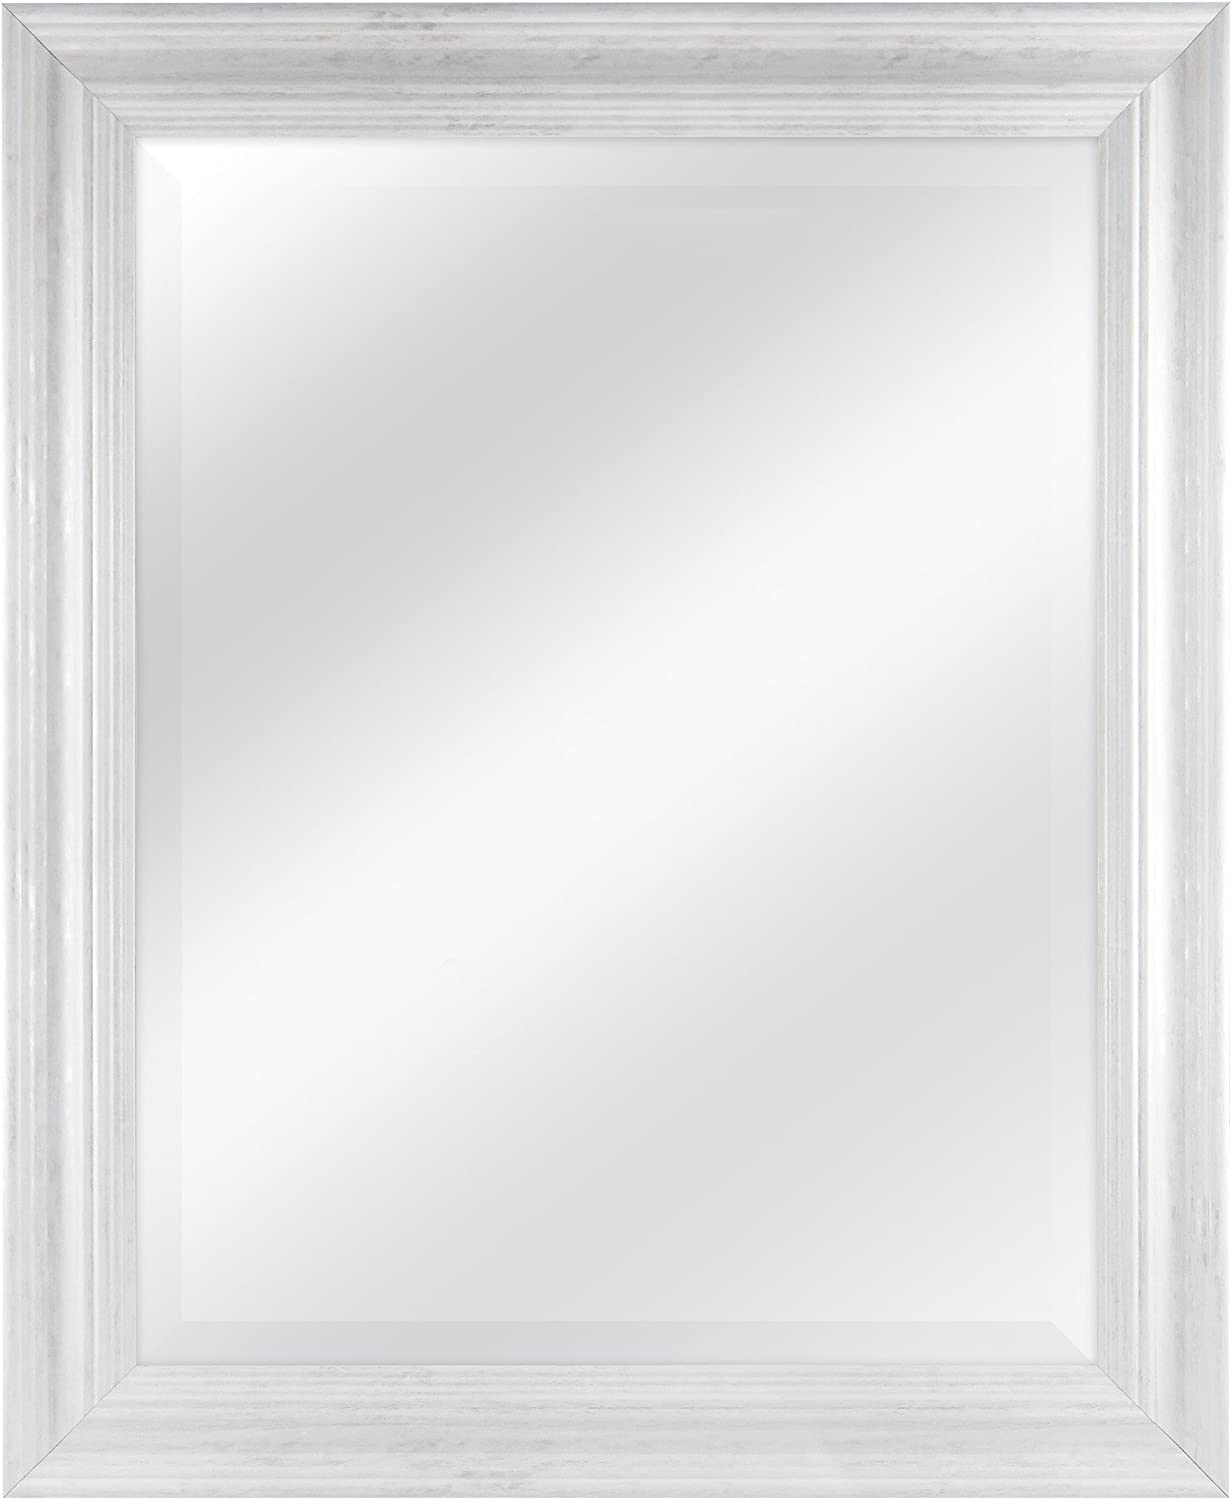 MCS 22 by 28 inch Scoop Mirror, 27.5 by 33.5 inch Outside Dimension, White Wash Finish 20548, 27.5 x 33.5 Inch,